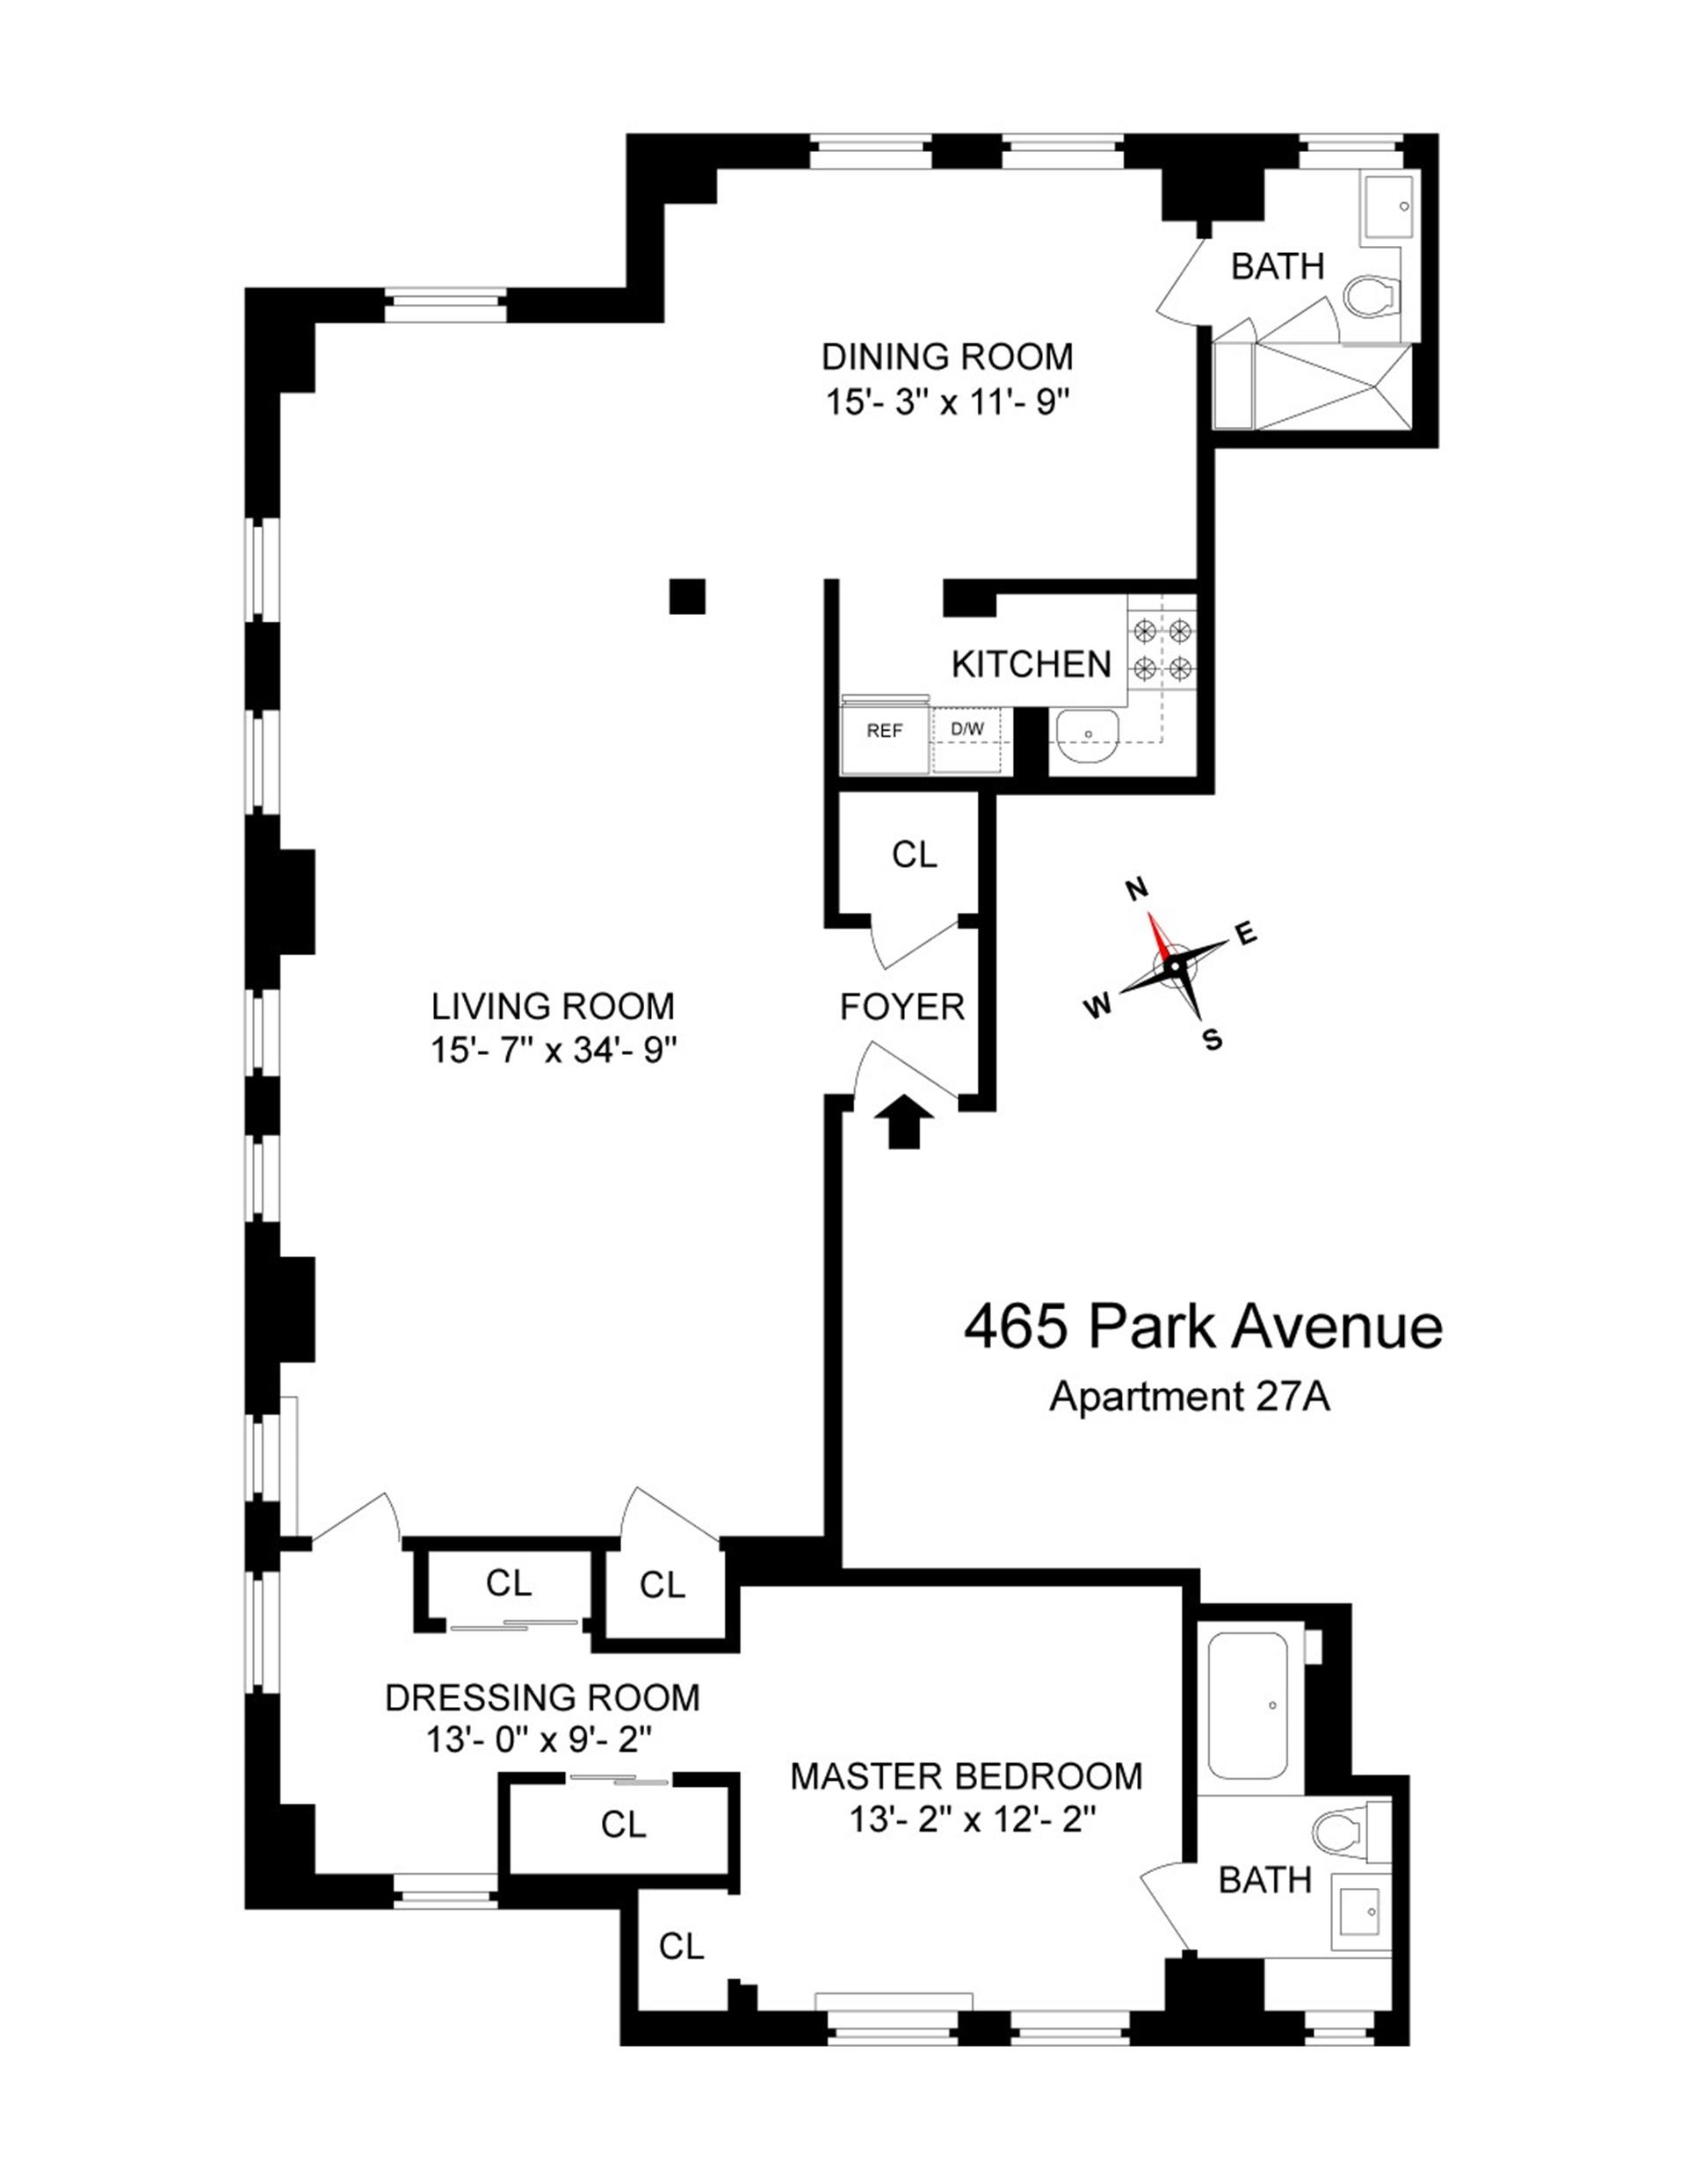 Floor plan of 465 Park Avenue, 27A - Midtown, New York